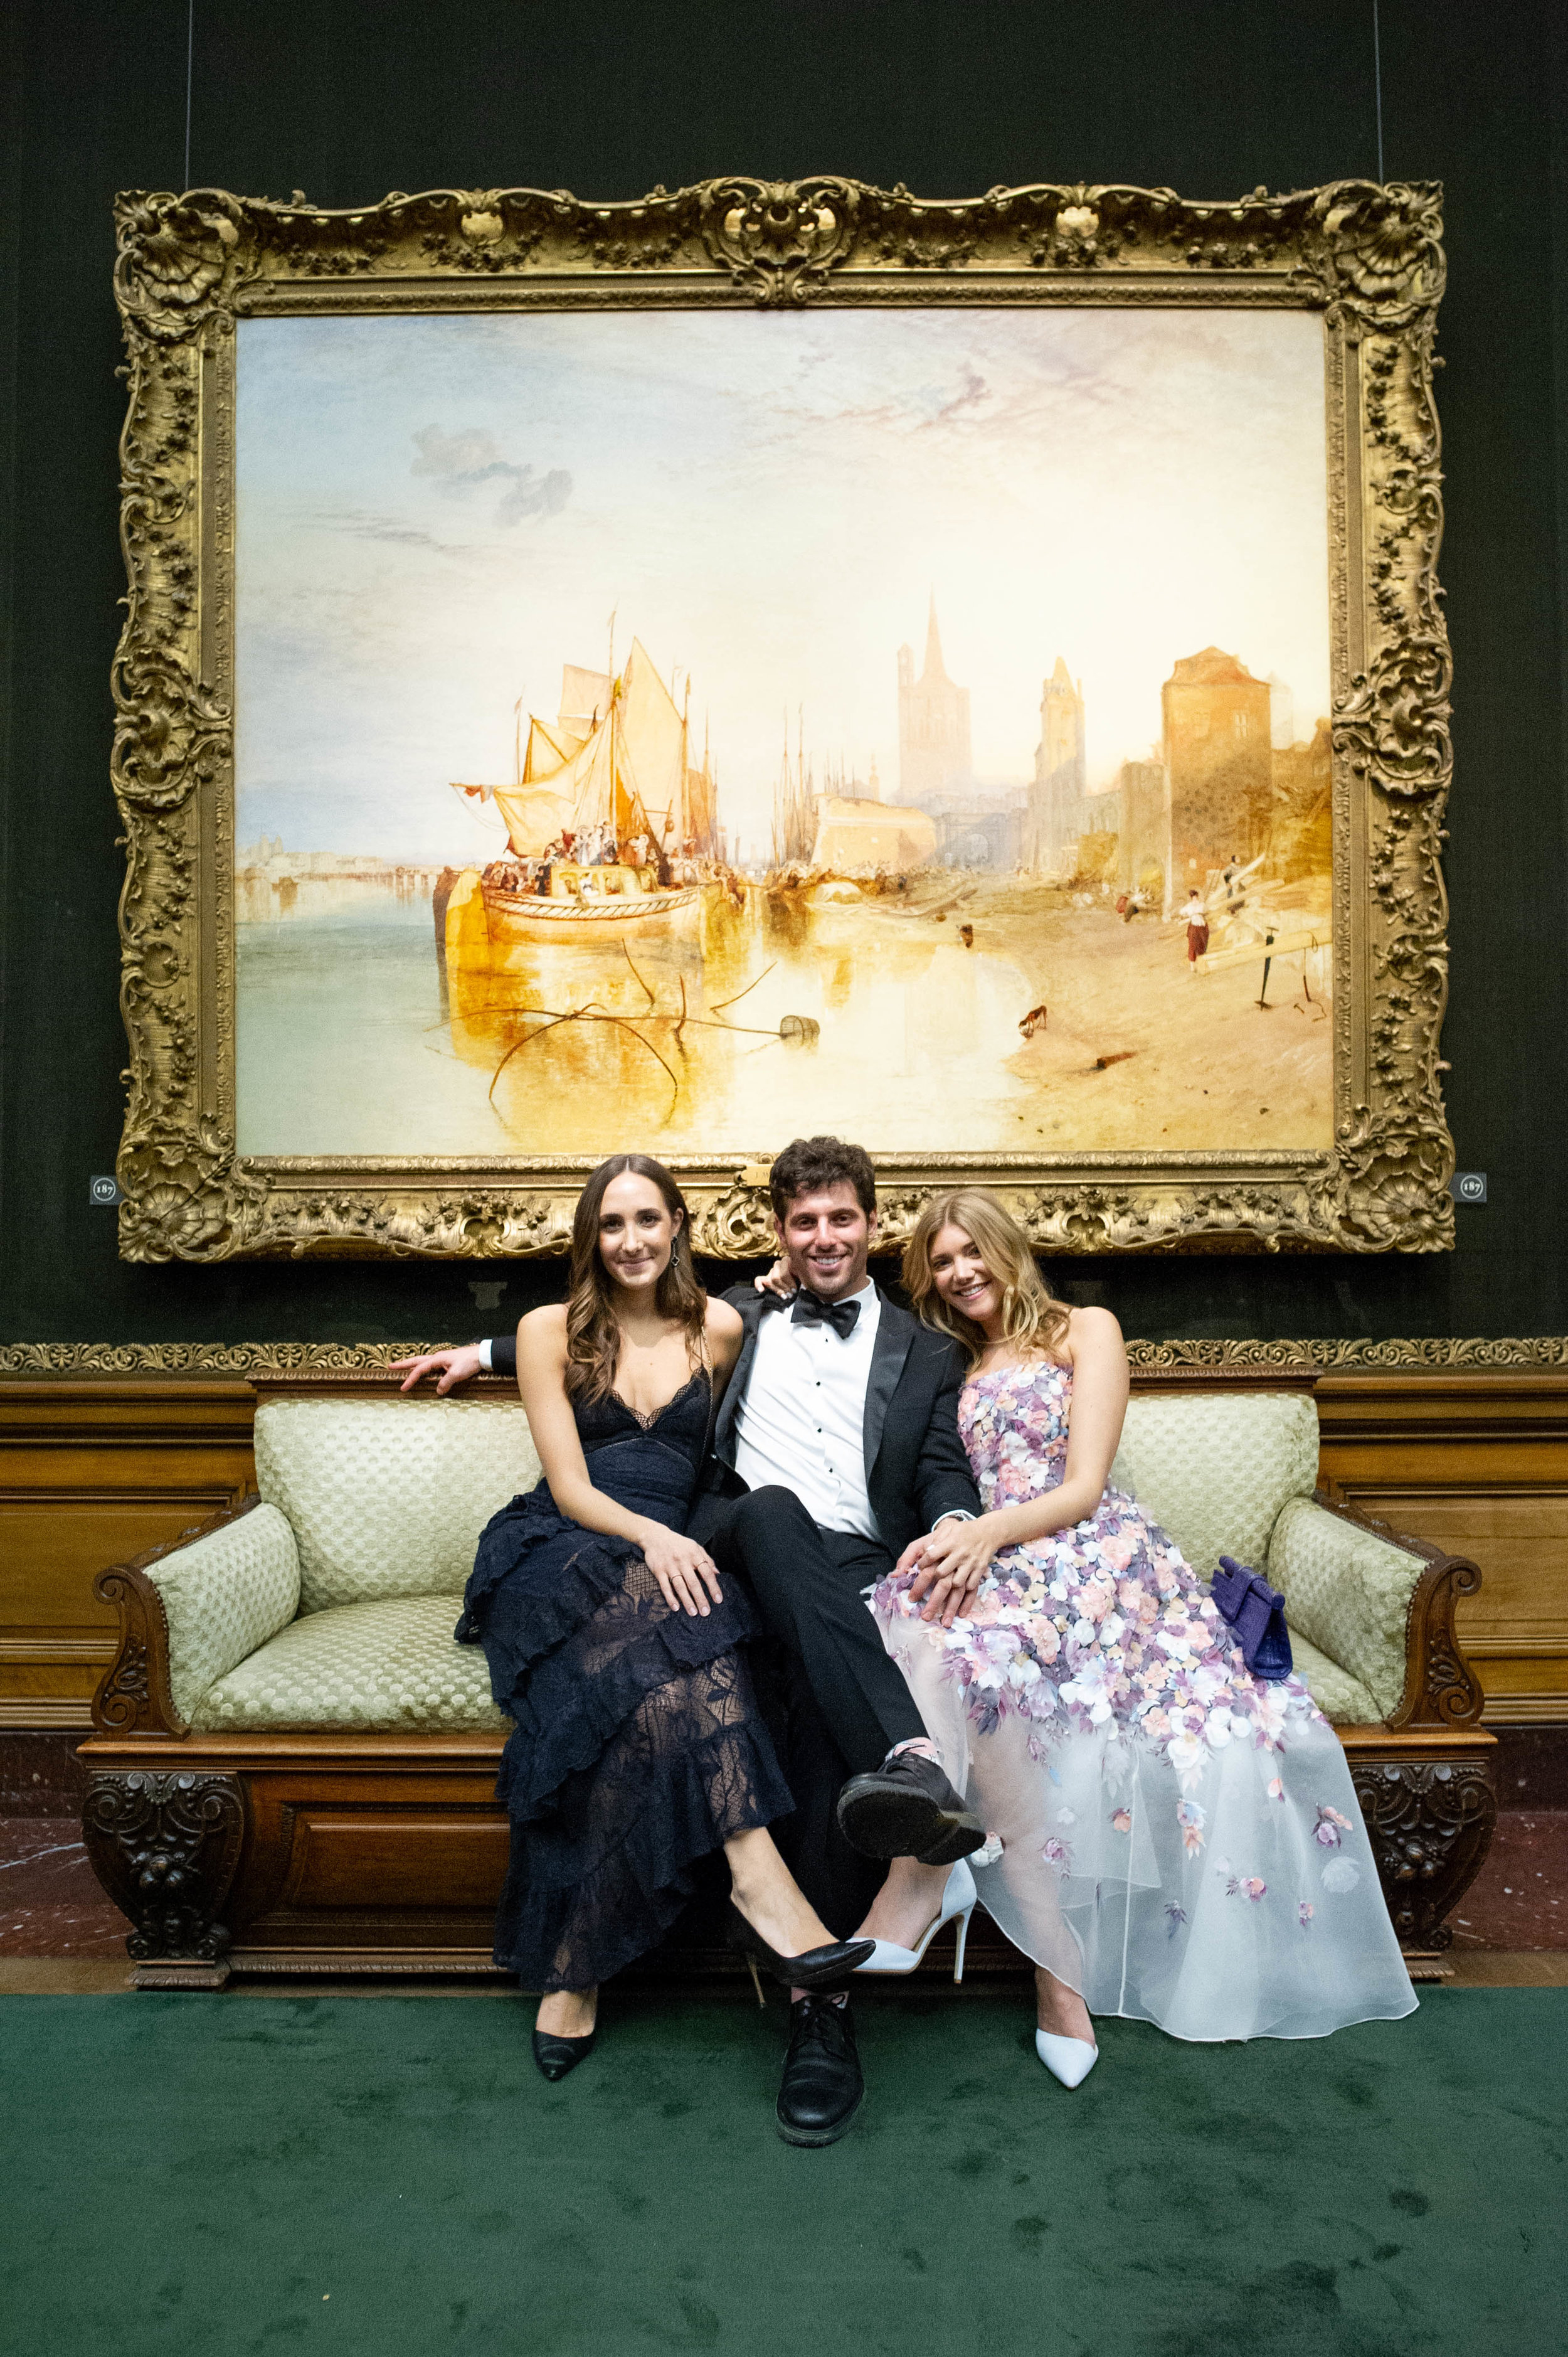 Carolyn Floersheimer, Brian Bochner, and Katie Sands attend The Frick Collection's 20th Annual Young Fellows Ball at 1 East 70th Street on Thursday, March 21st, 2019. Photography, Courtesy of The Frick Collection.